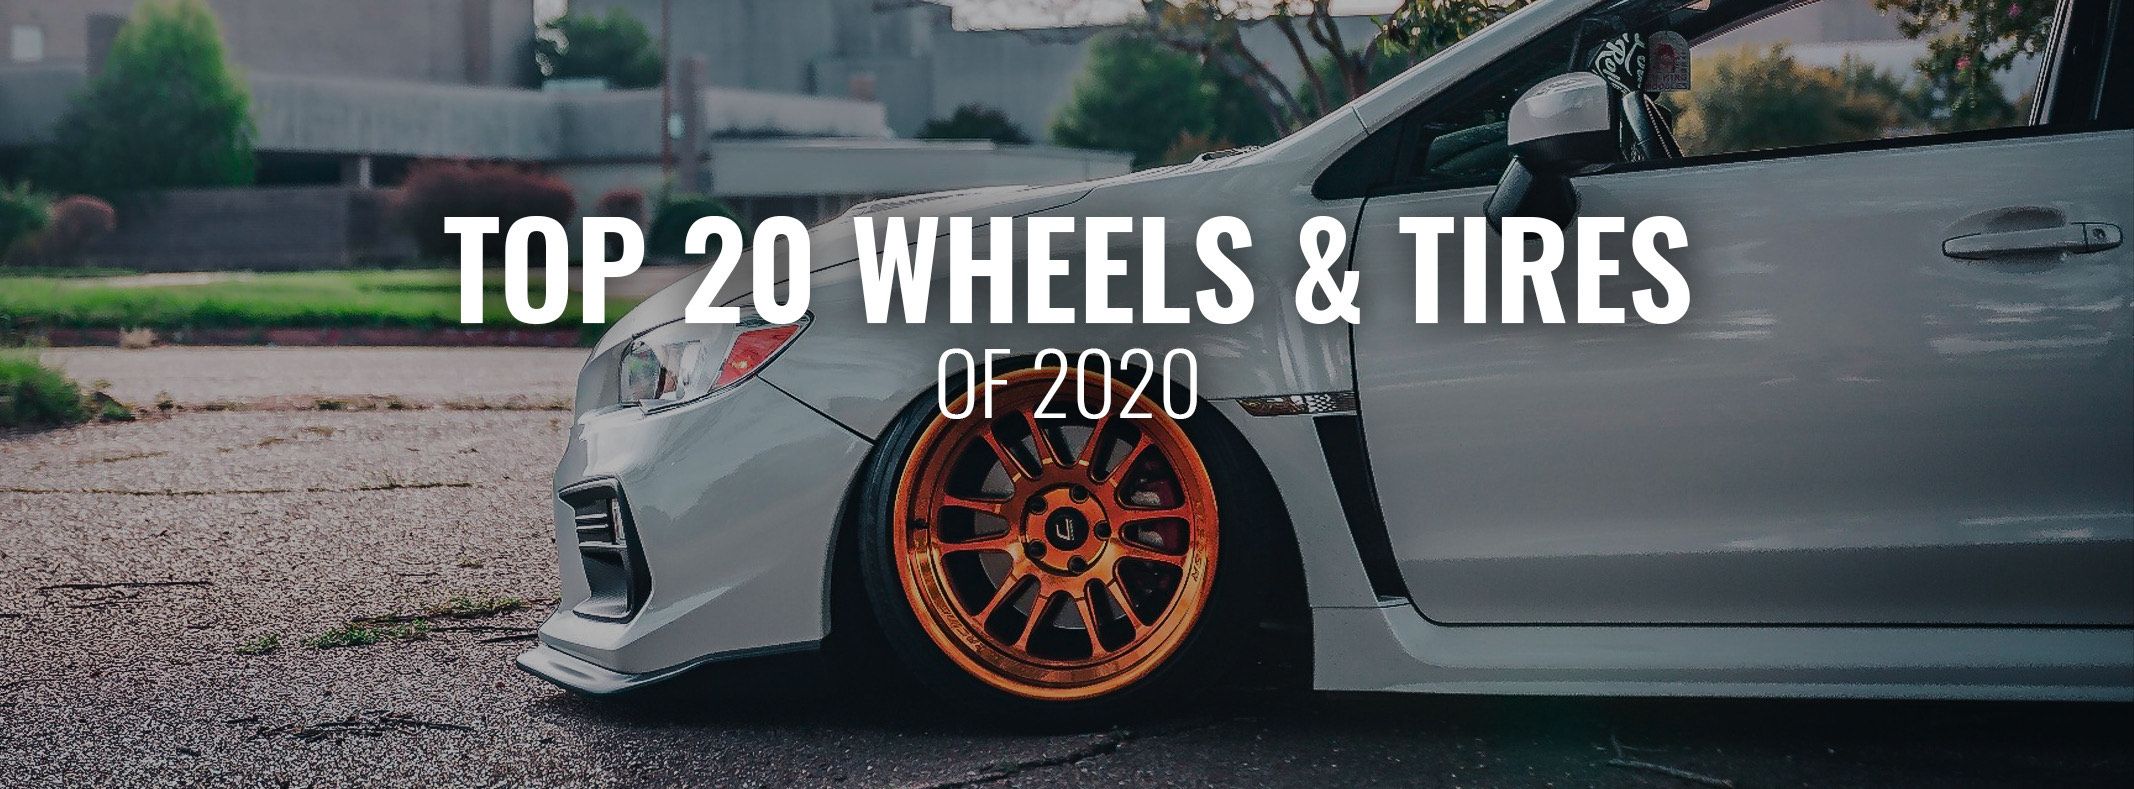 Fitment Industries | Top 20 Wheels & Tires Desktop